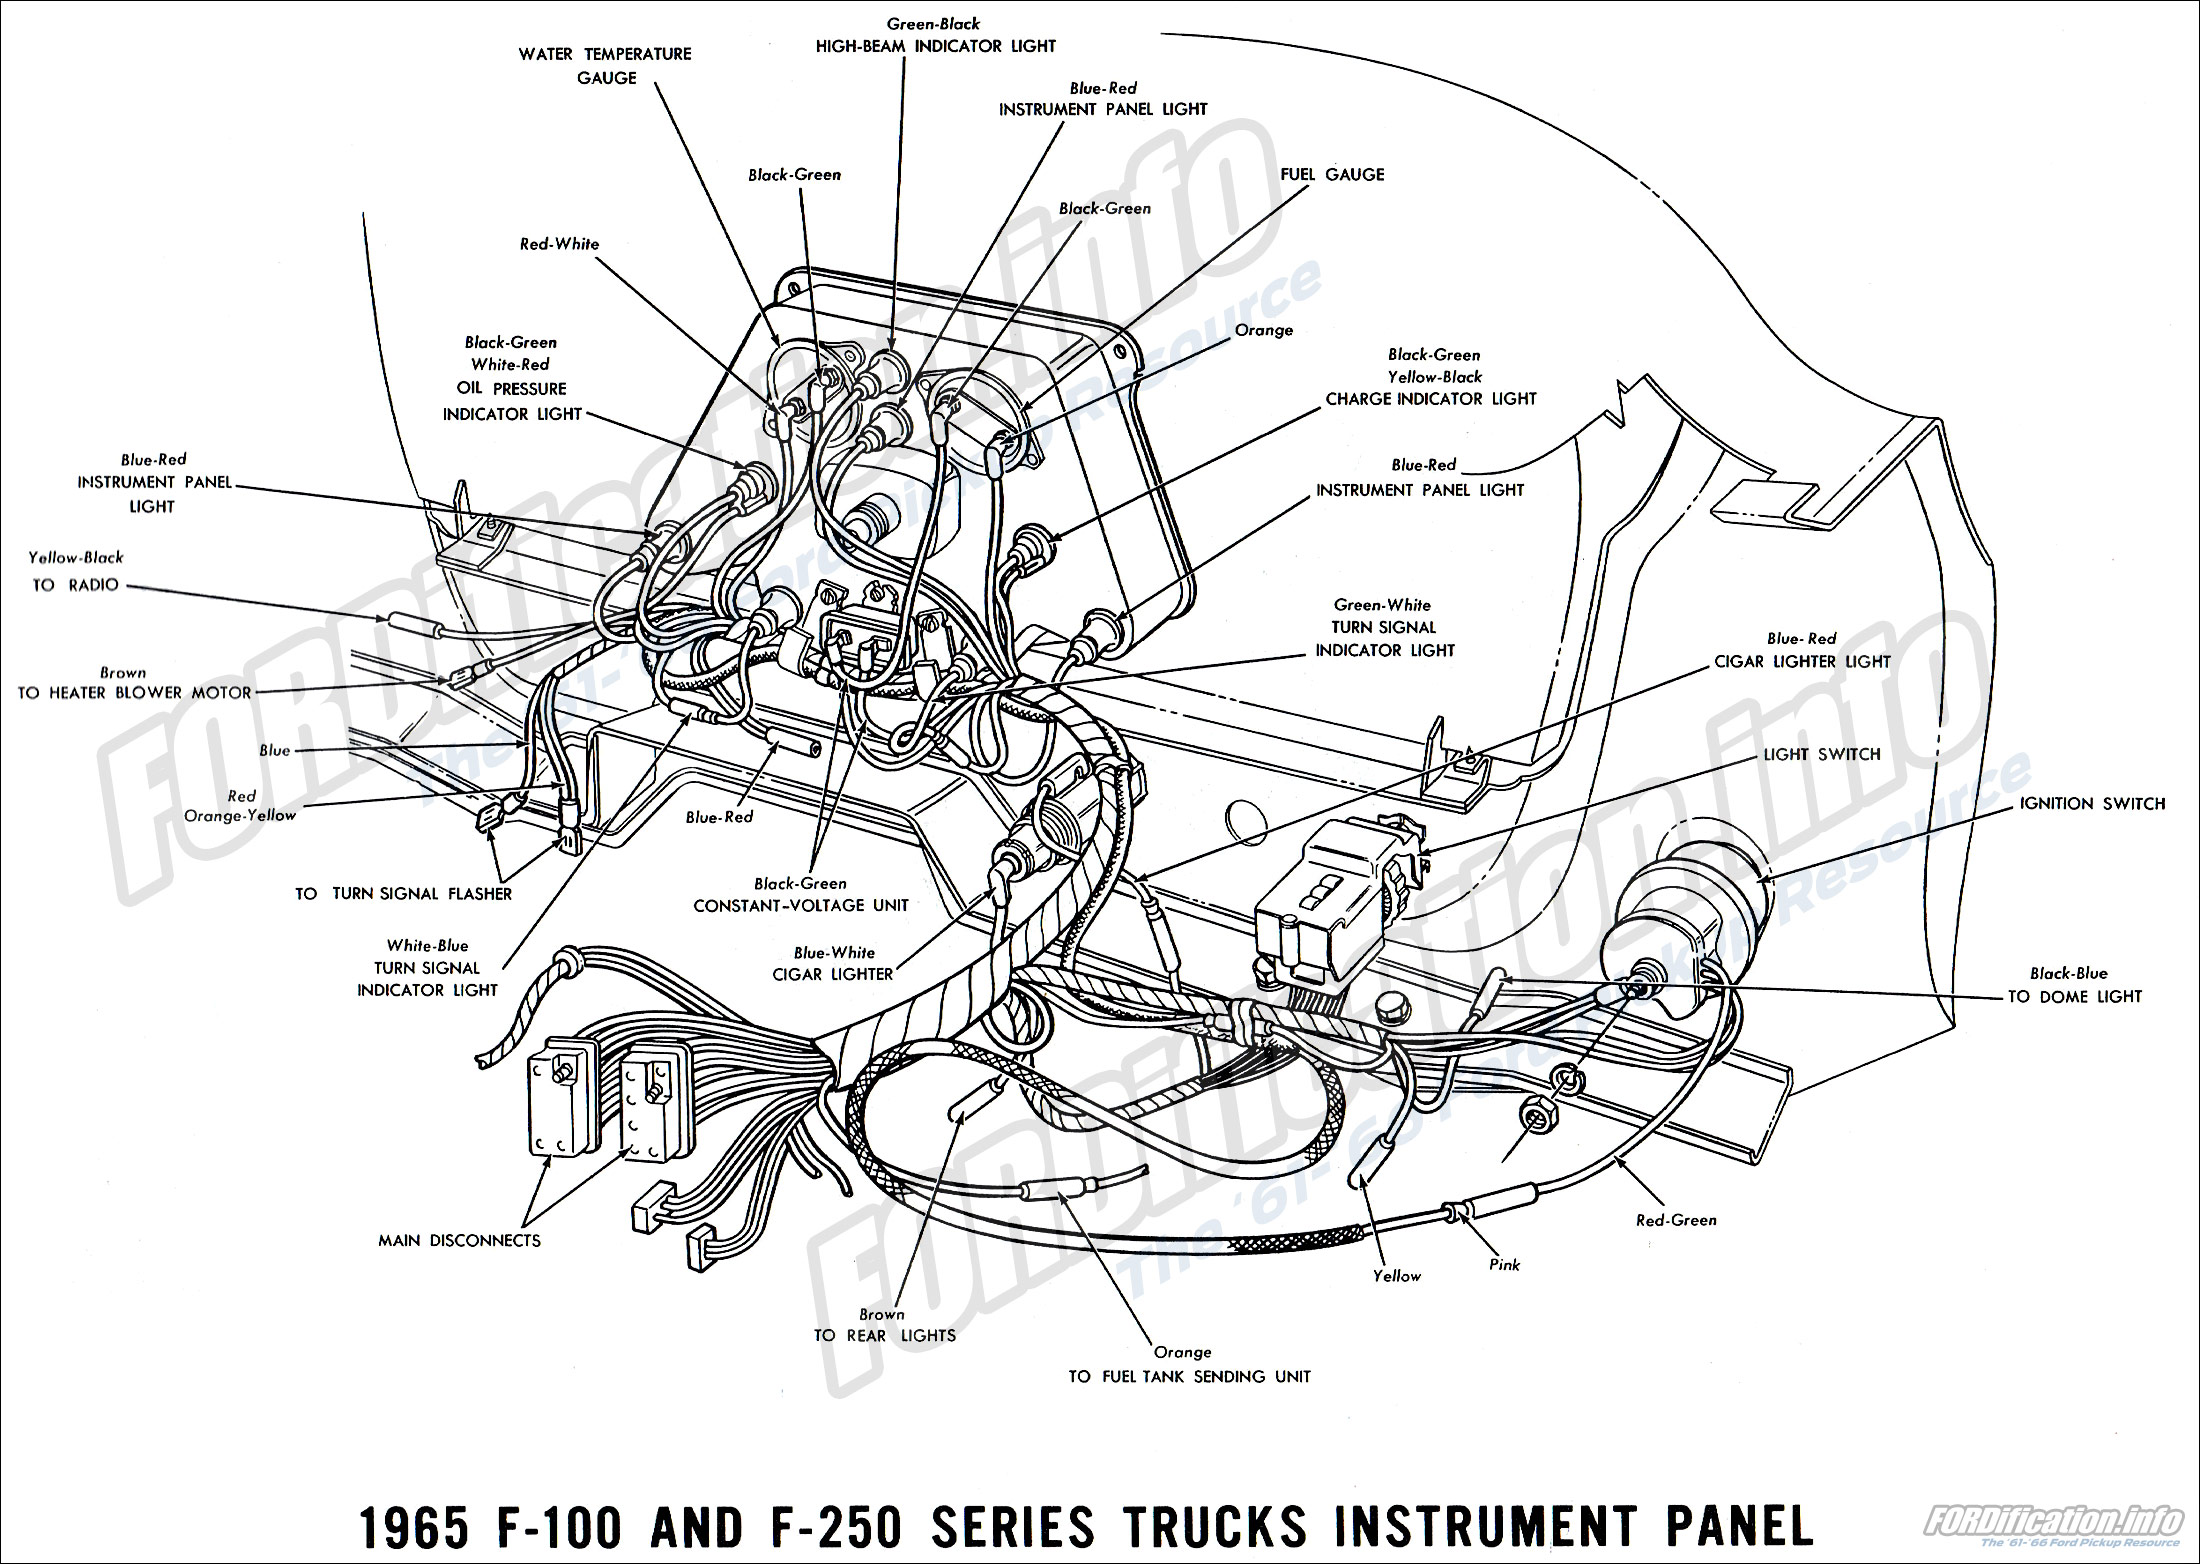 Instr Panel on 65 ford f100 wiring diagram